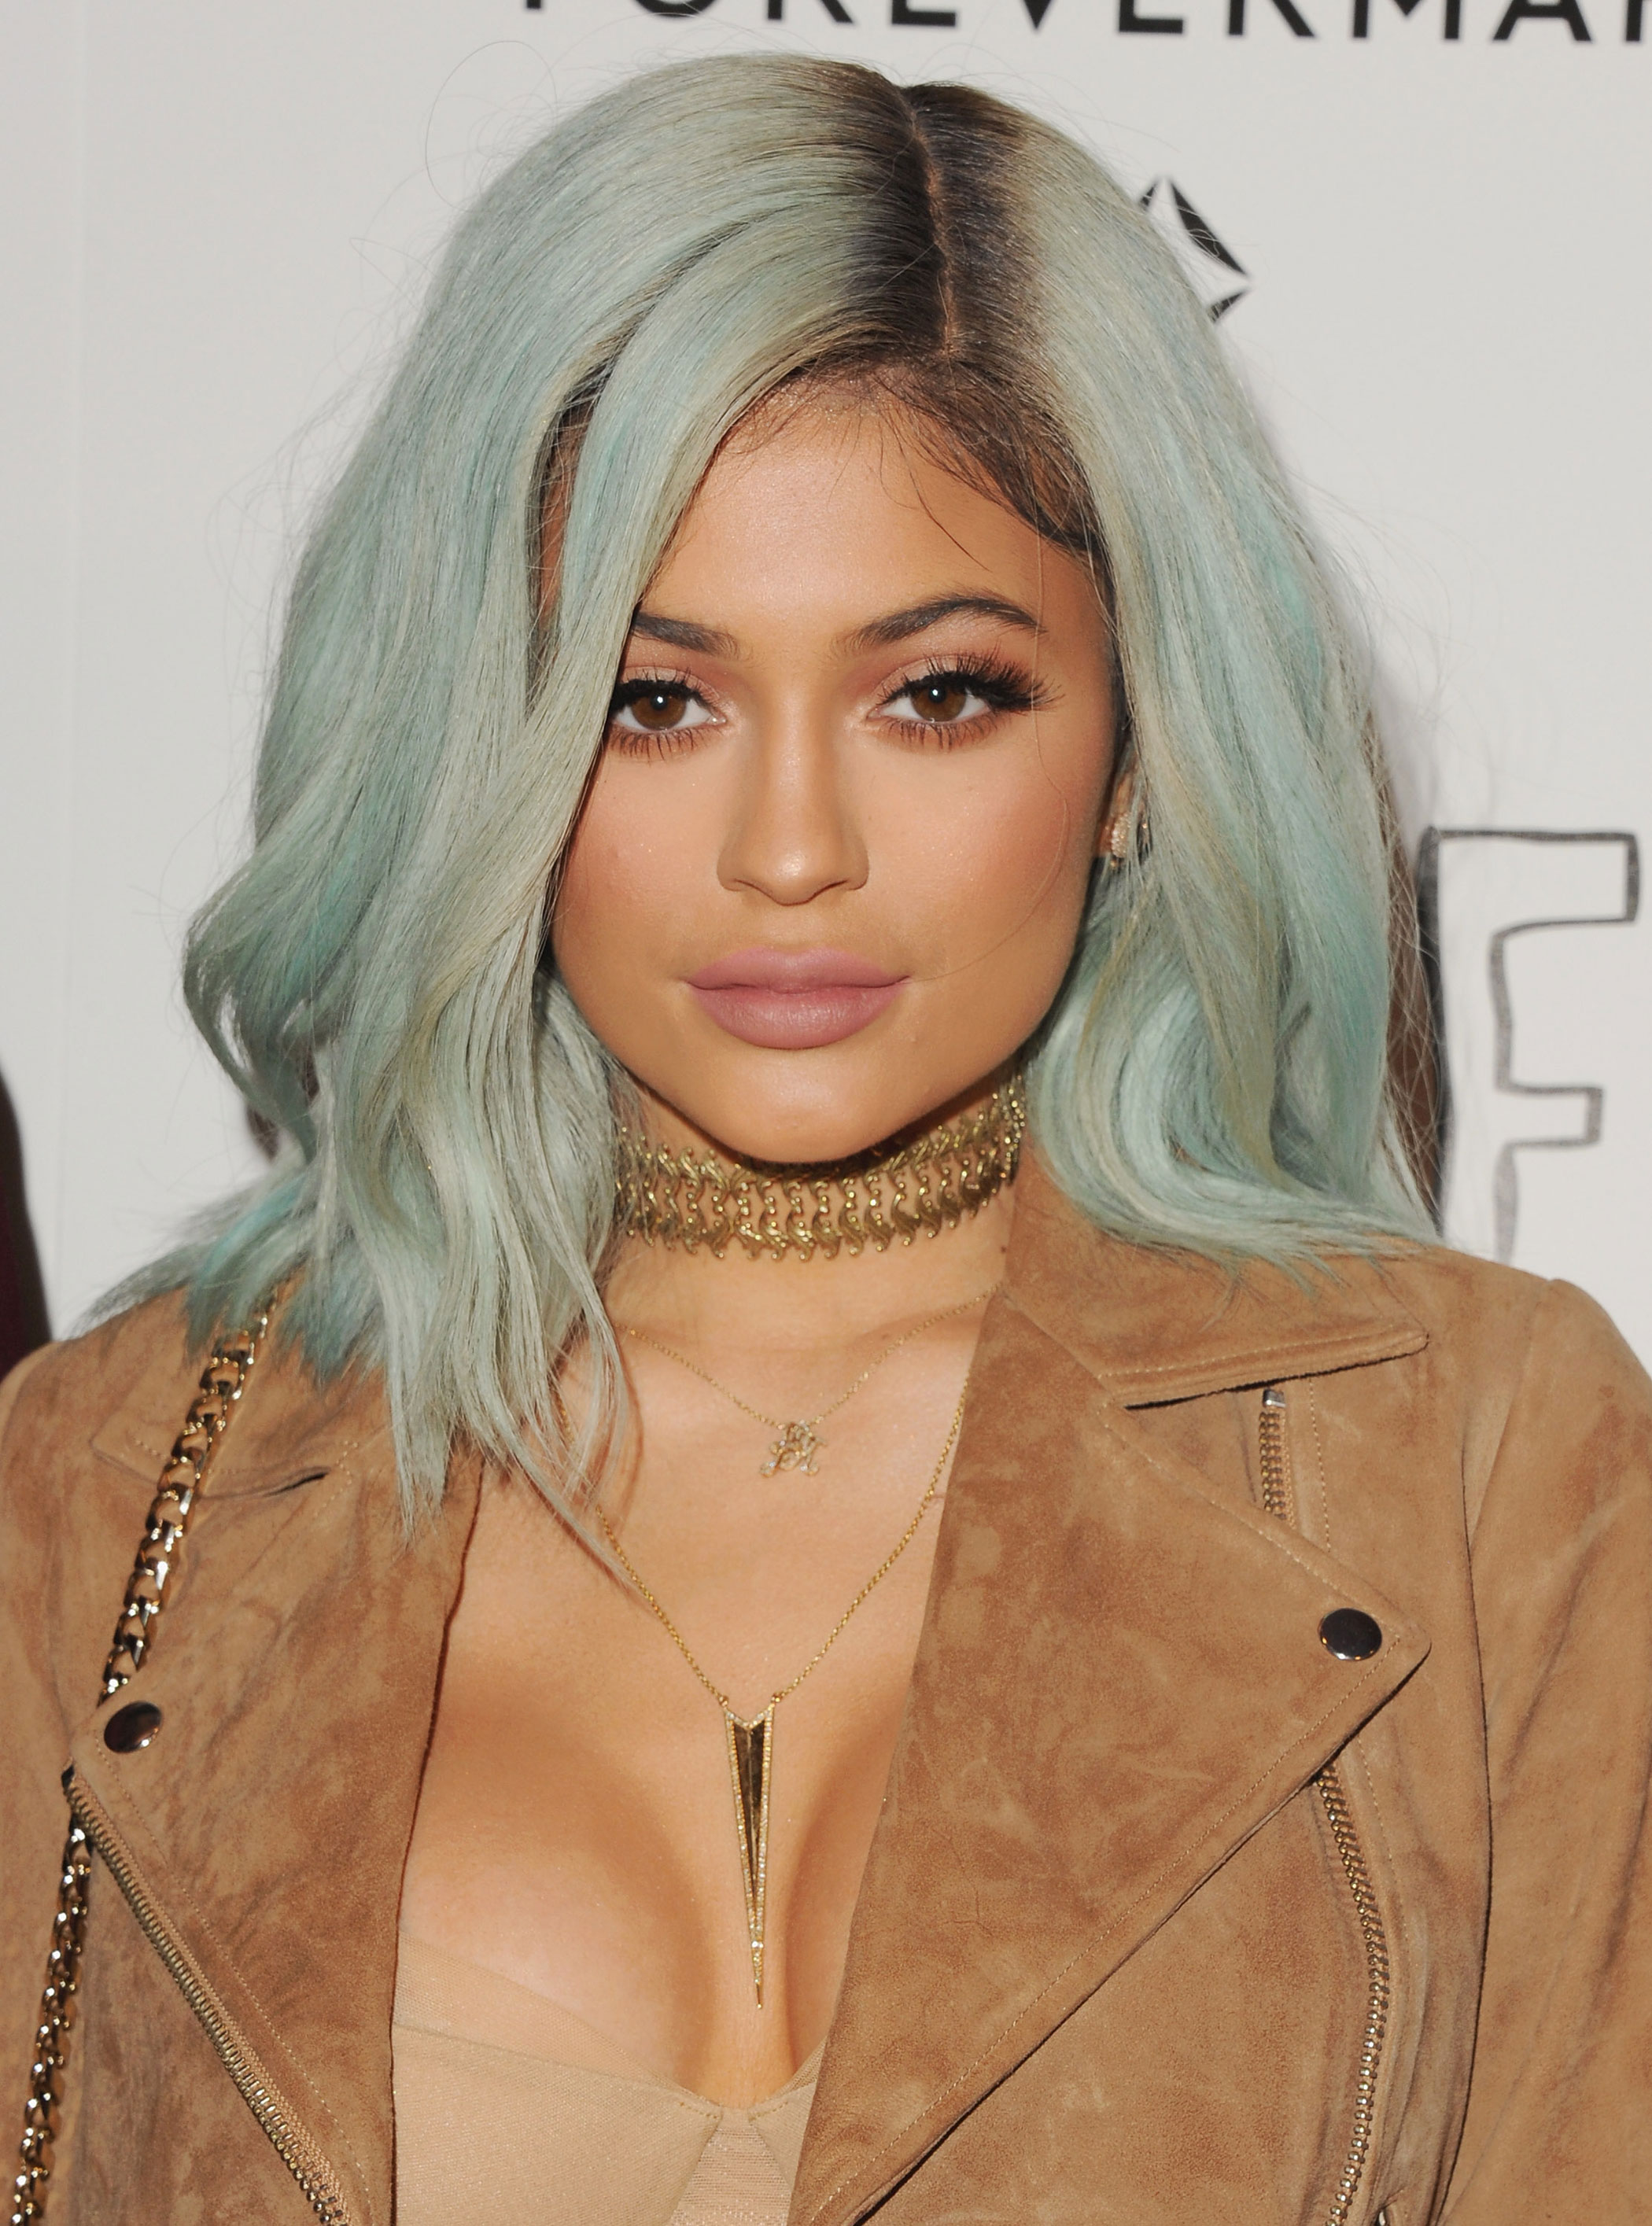 Most Influential Teens 2015 Kylie Jenner